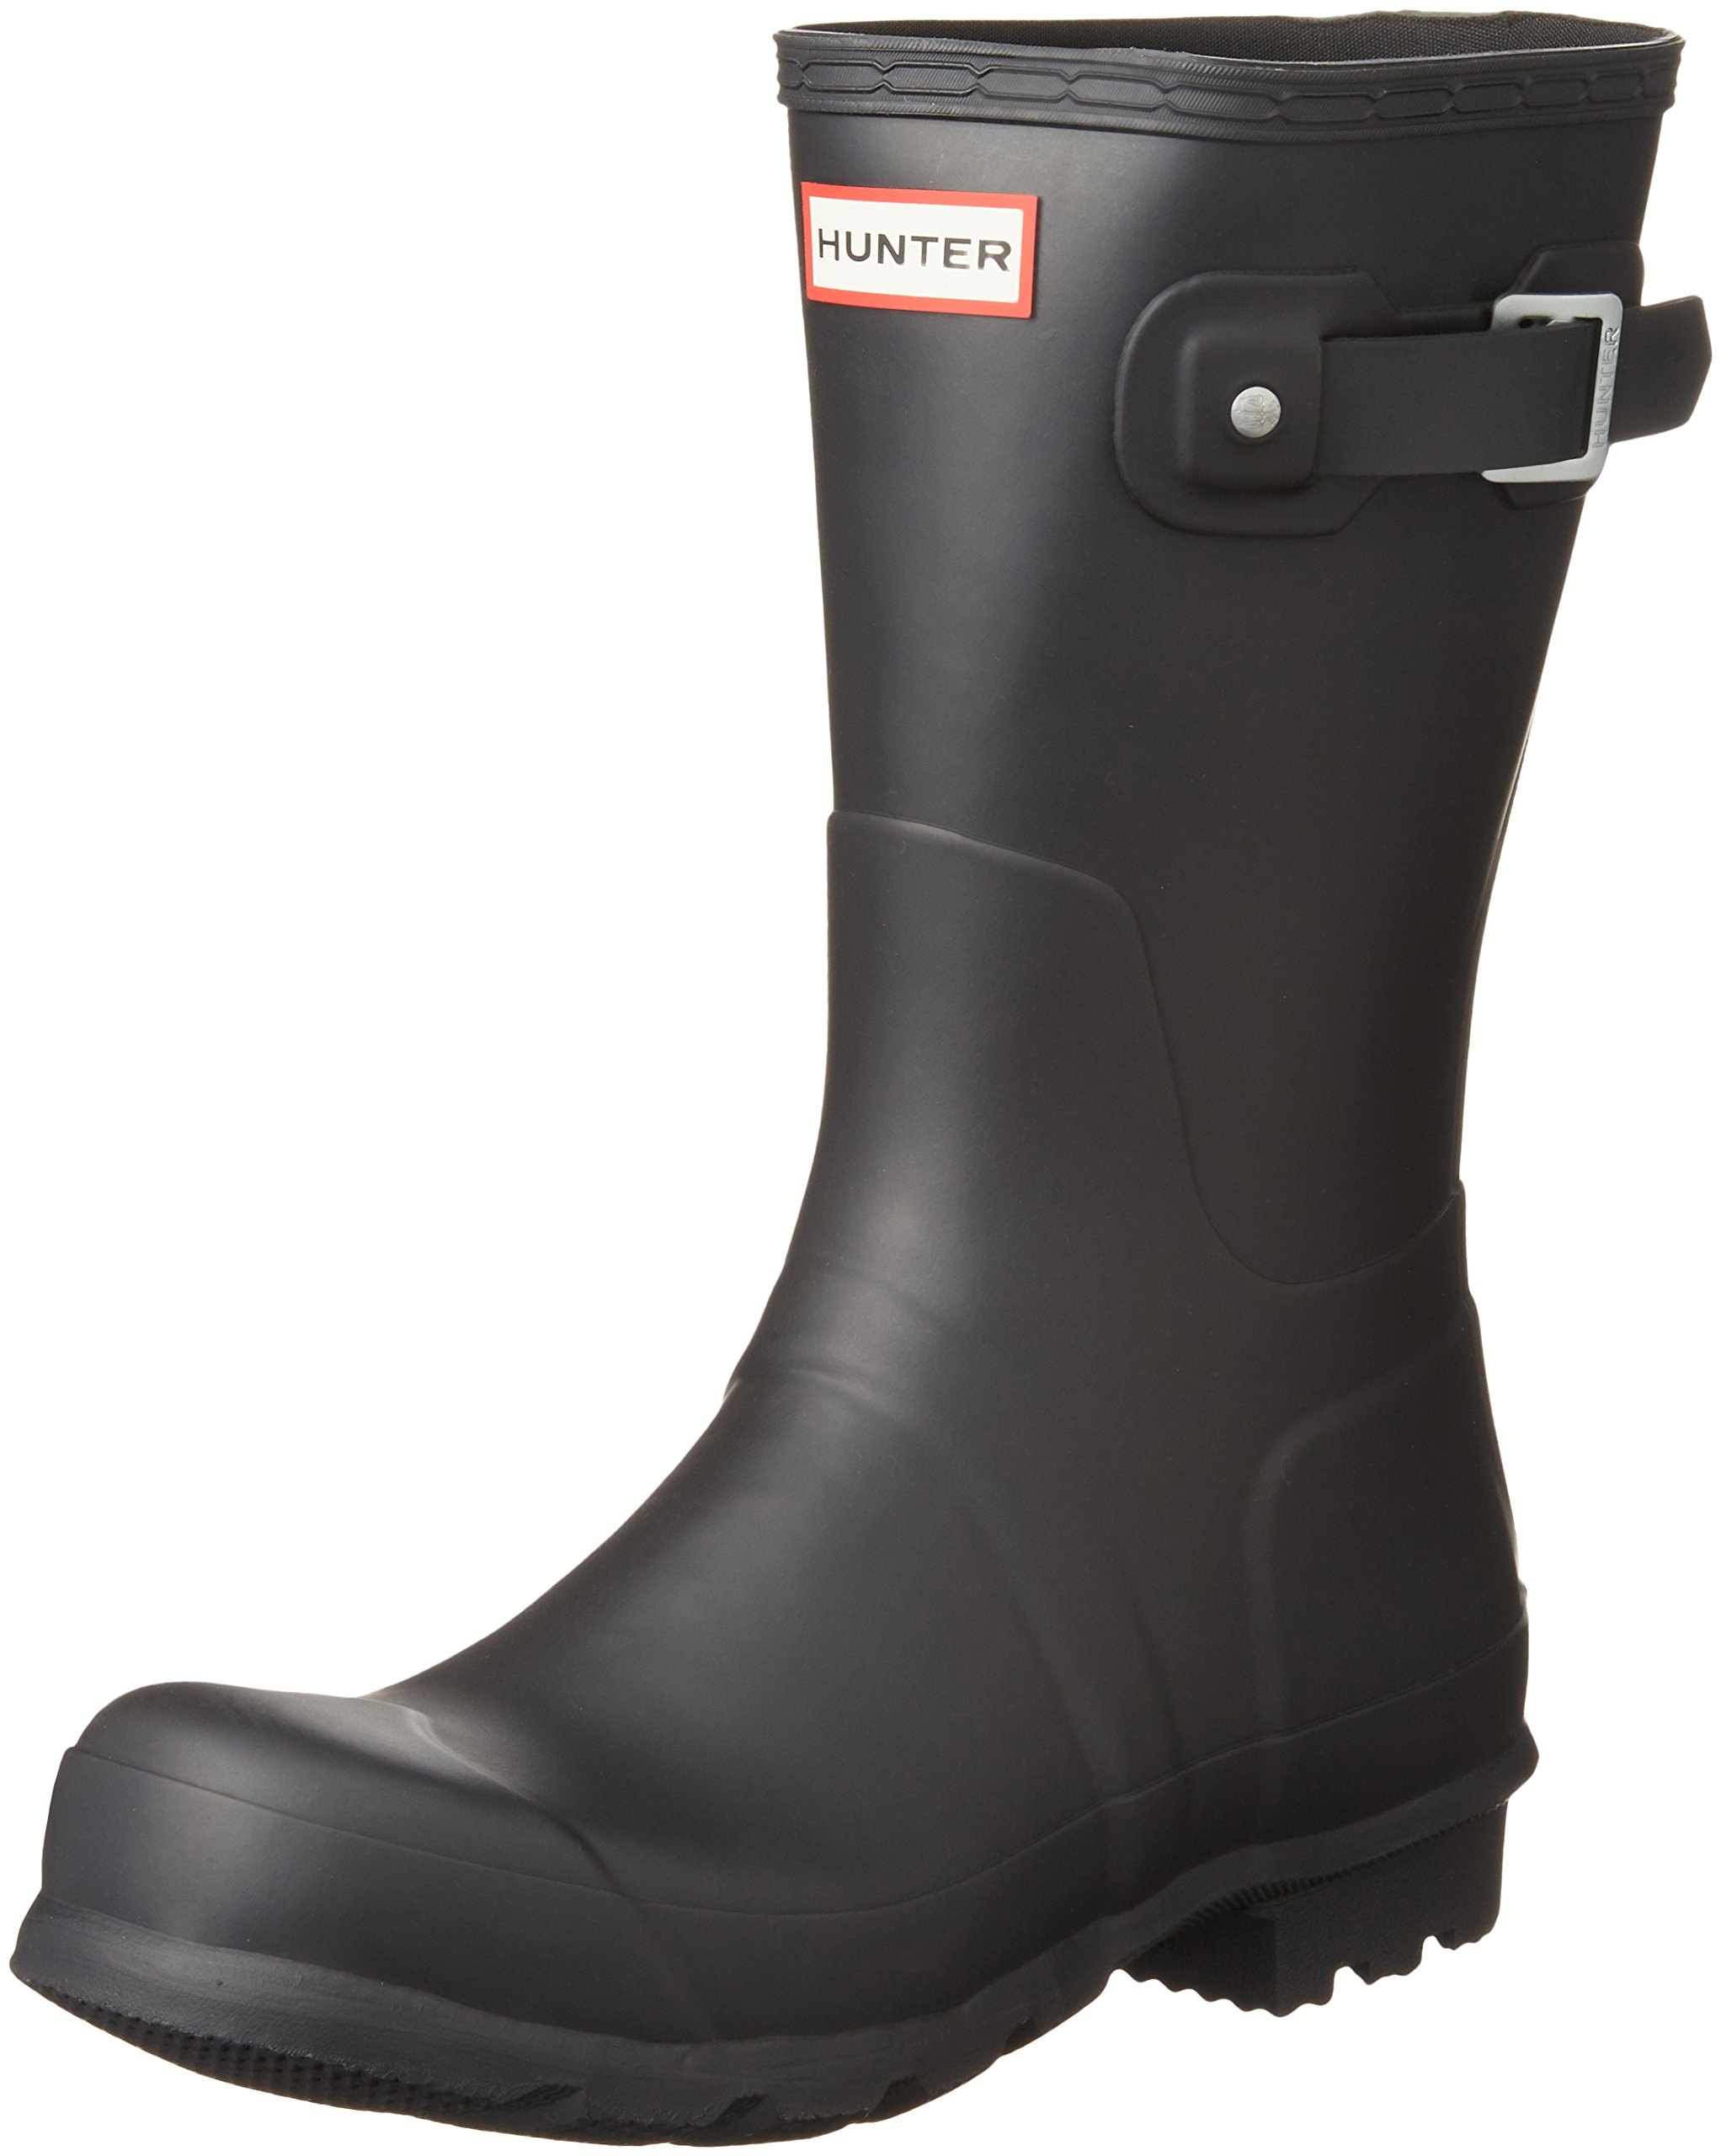 Hunter Boots Men's Original Short Boots, Black, 8 D(M) US